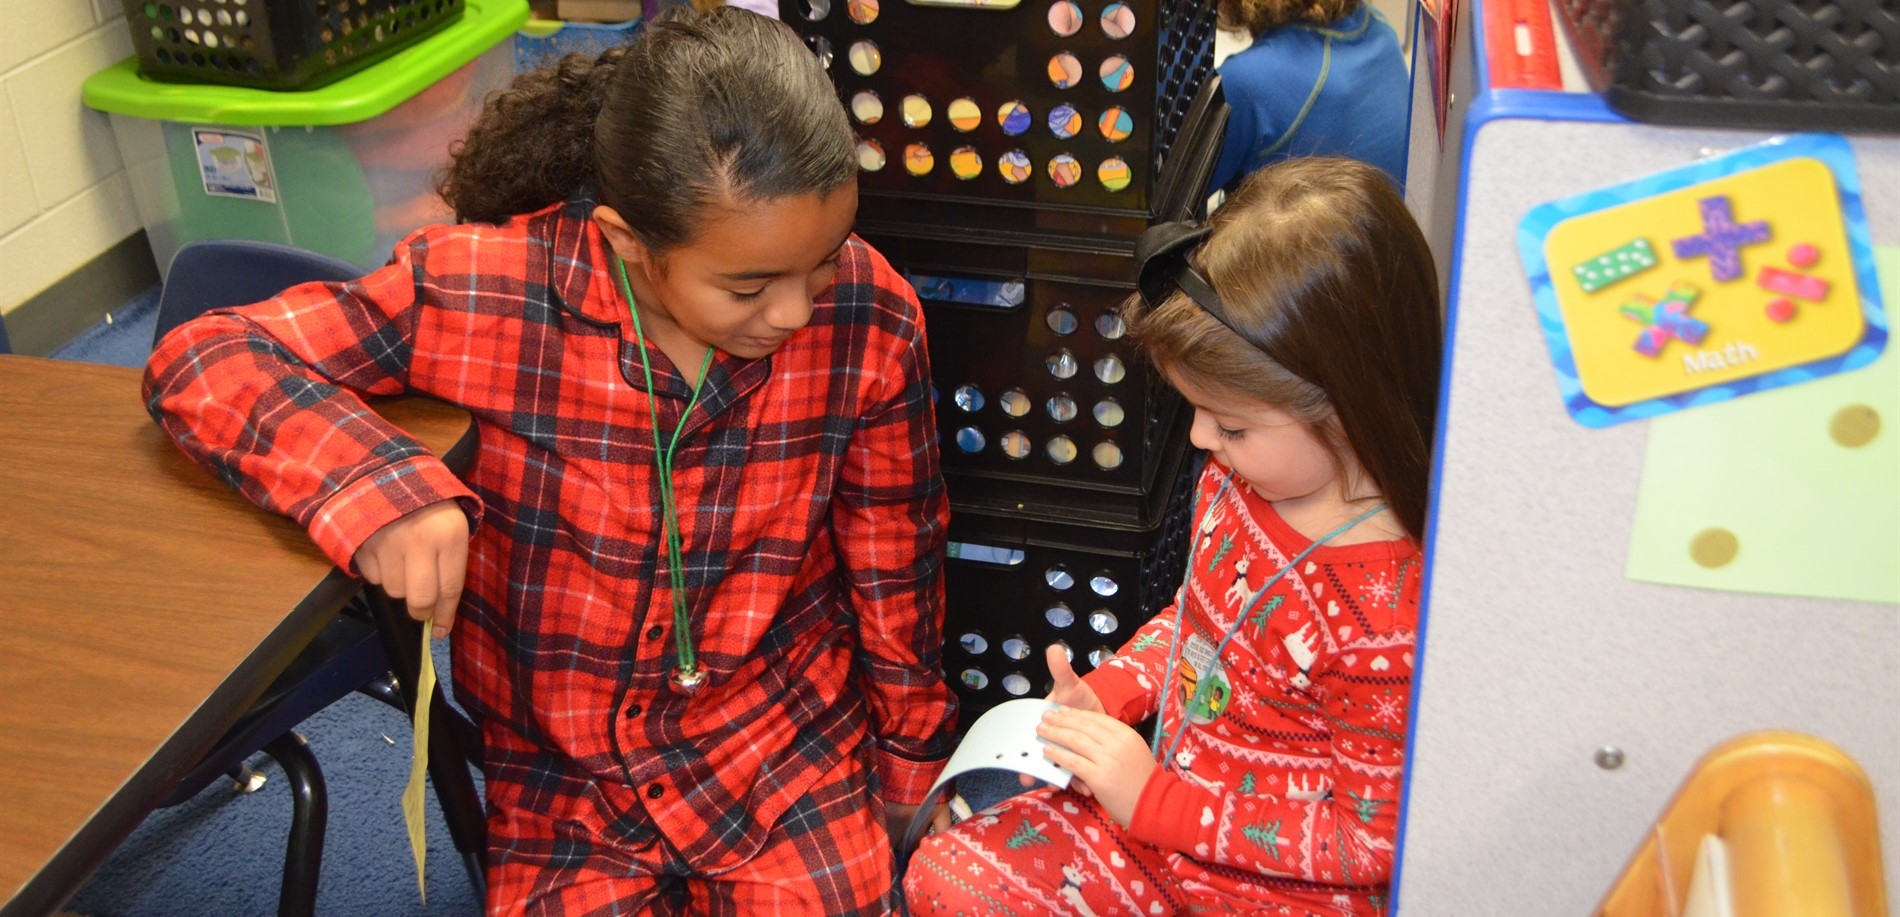 Fifth-grade students at GC Burkhead Elementary gave